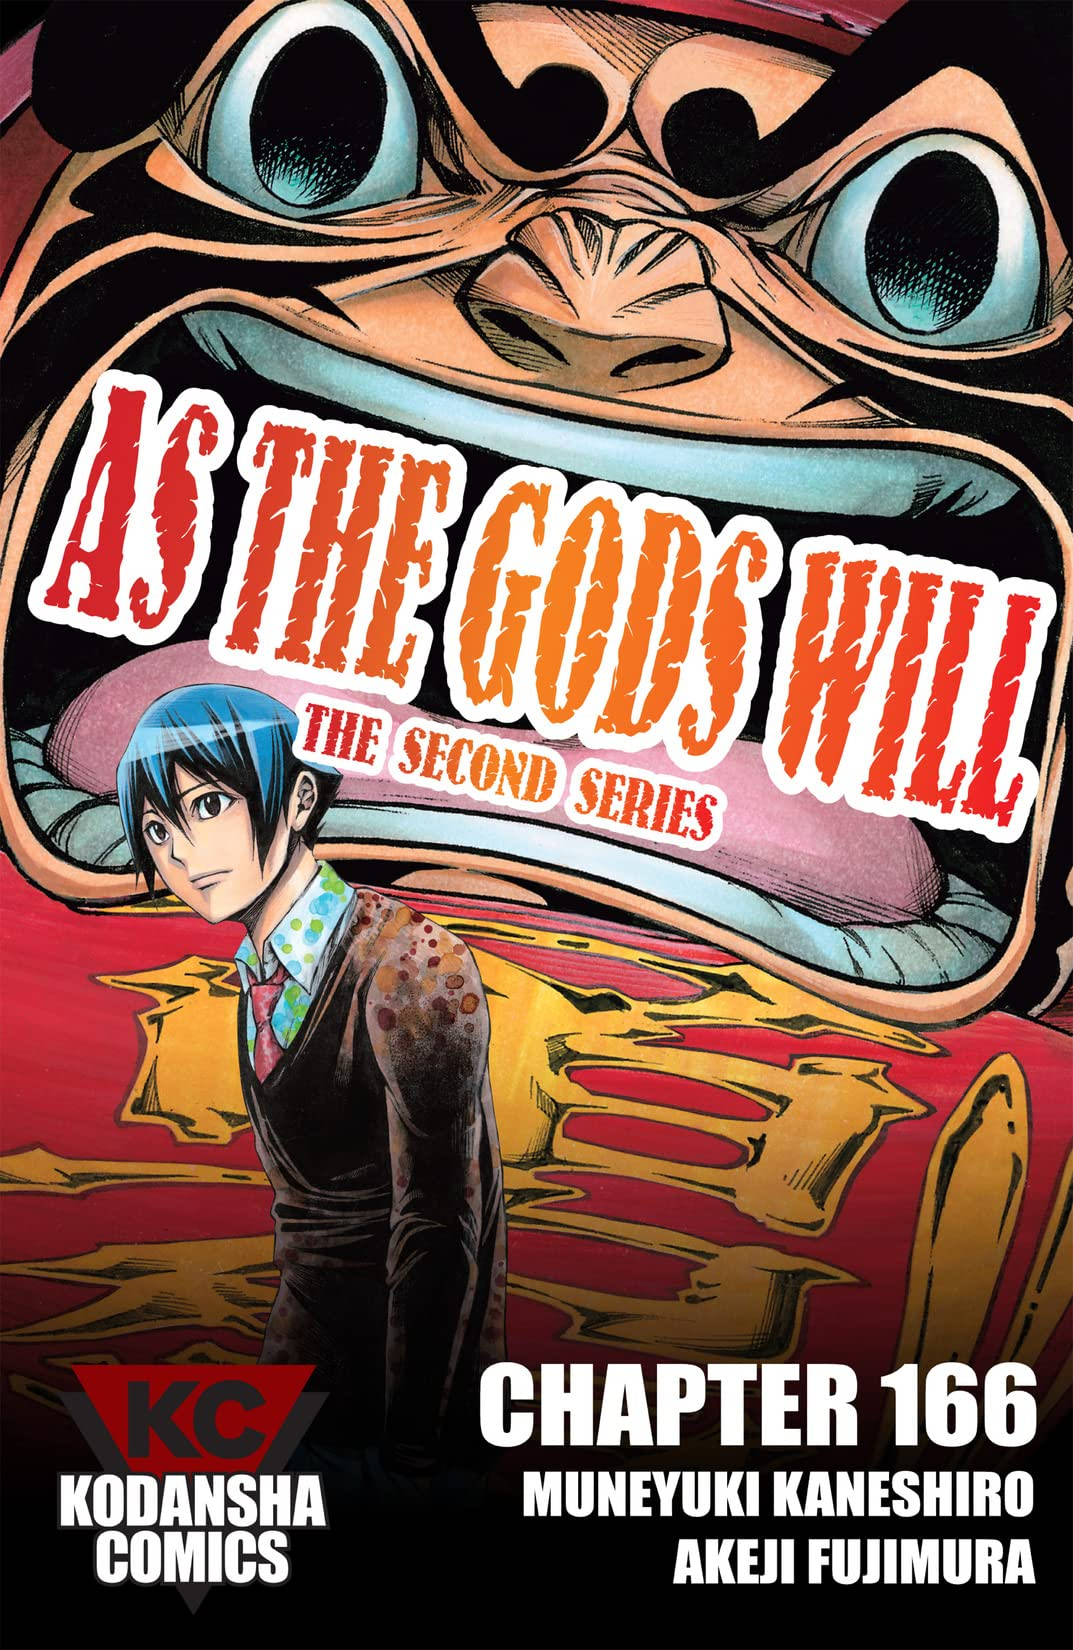 As The Gods Will: The Second Series #166